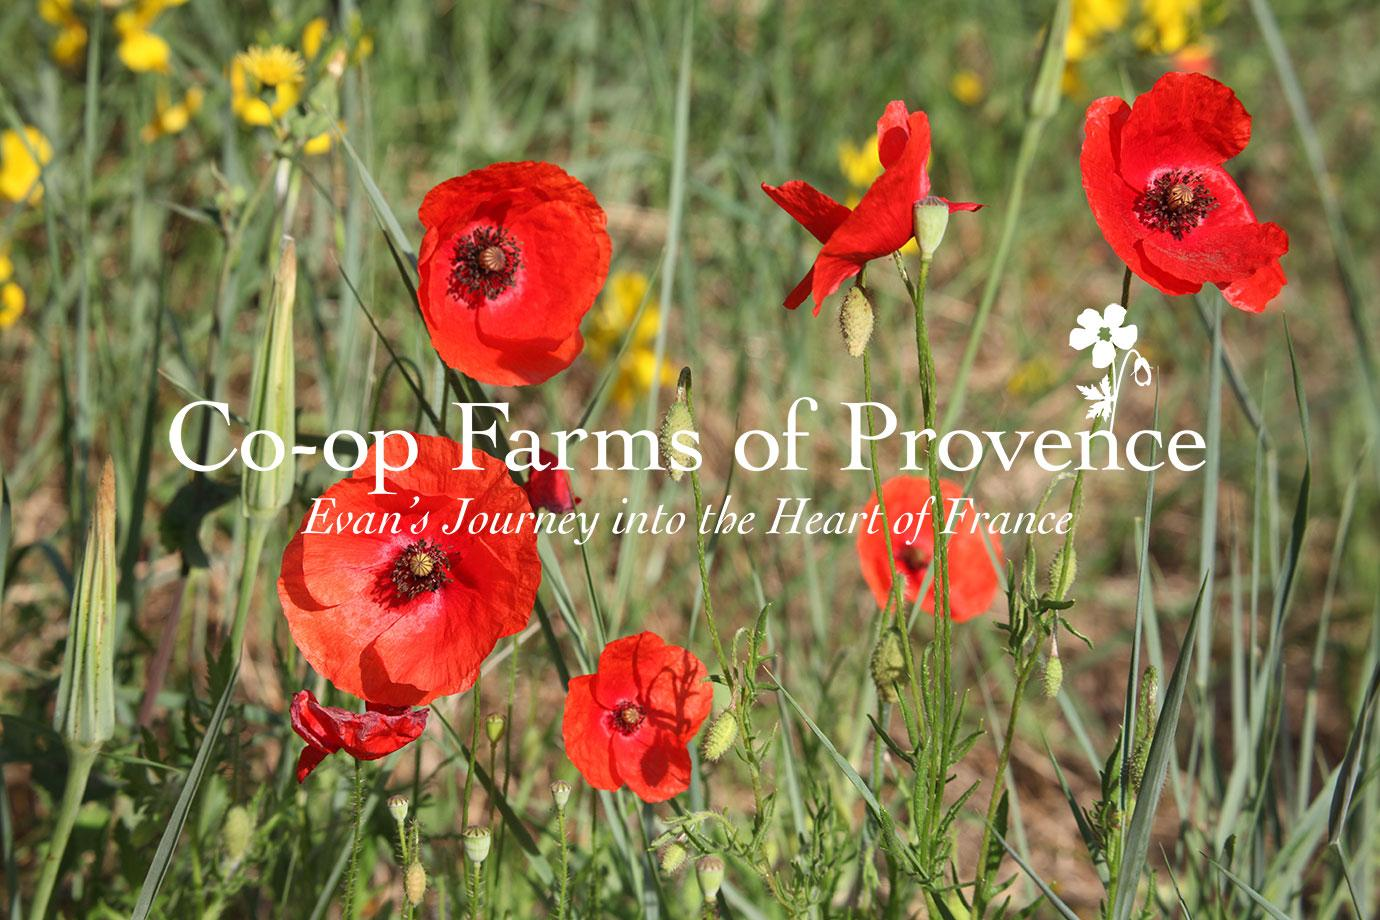 Co-op Farms of Provence ~ Evan's Journey into the Heart of France